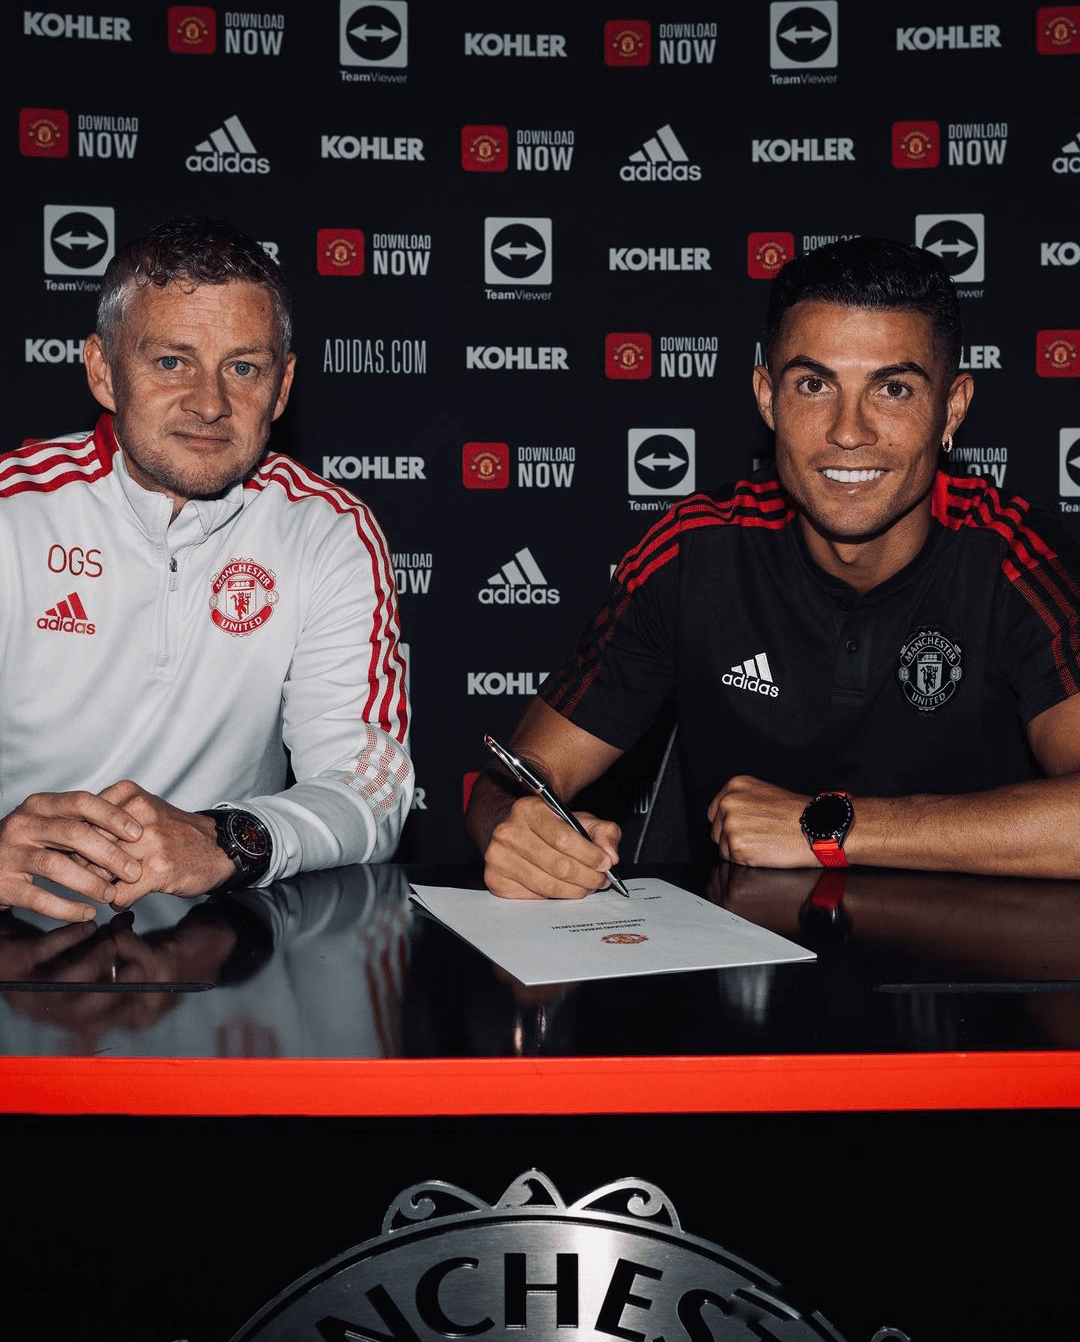 Manchester United release official photos of Cristiano Ronaldo's signing